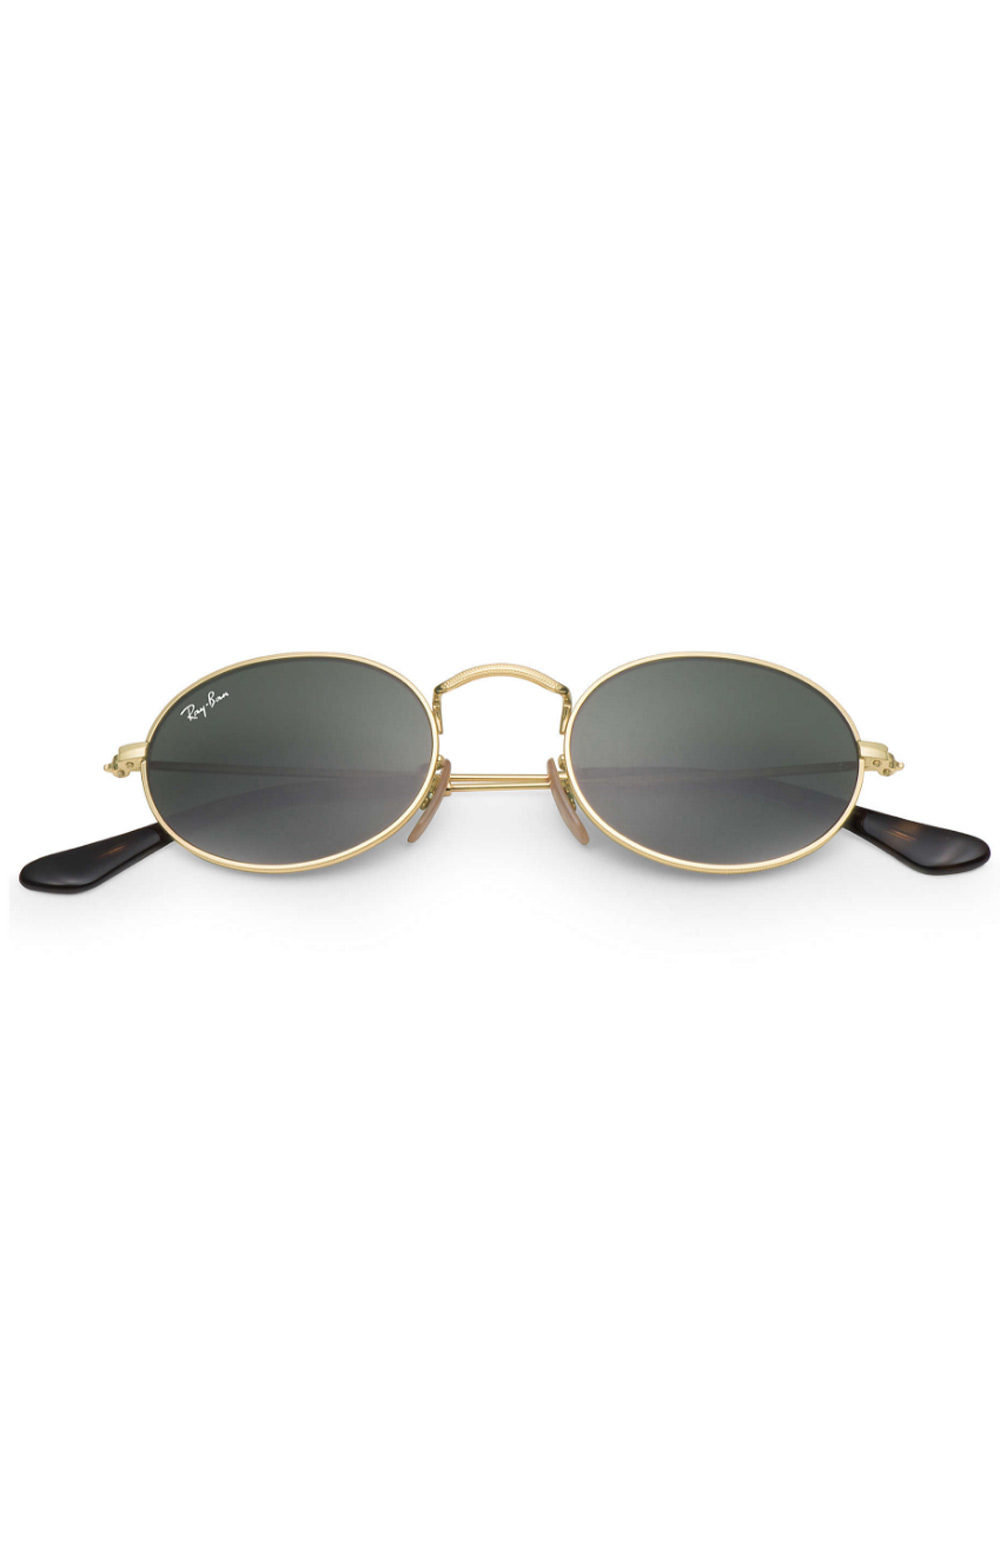 (001) Oval Sunglasses - Black/Gold Oval 2